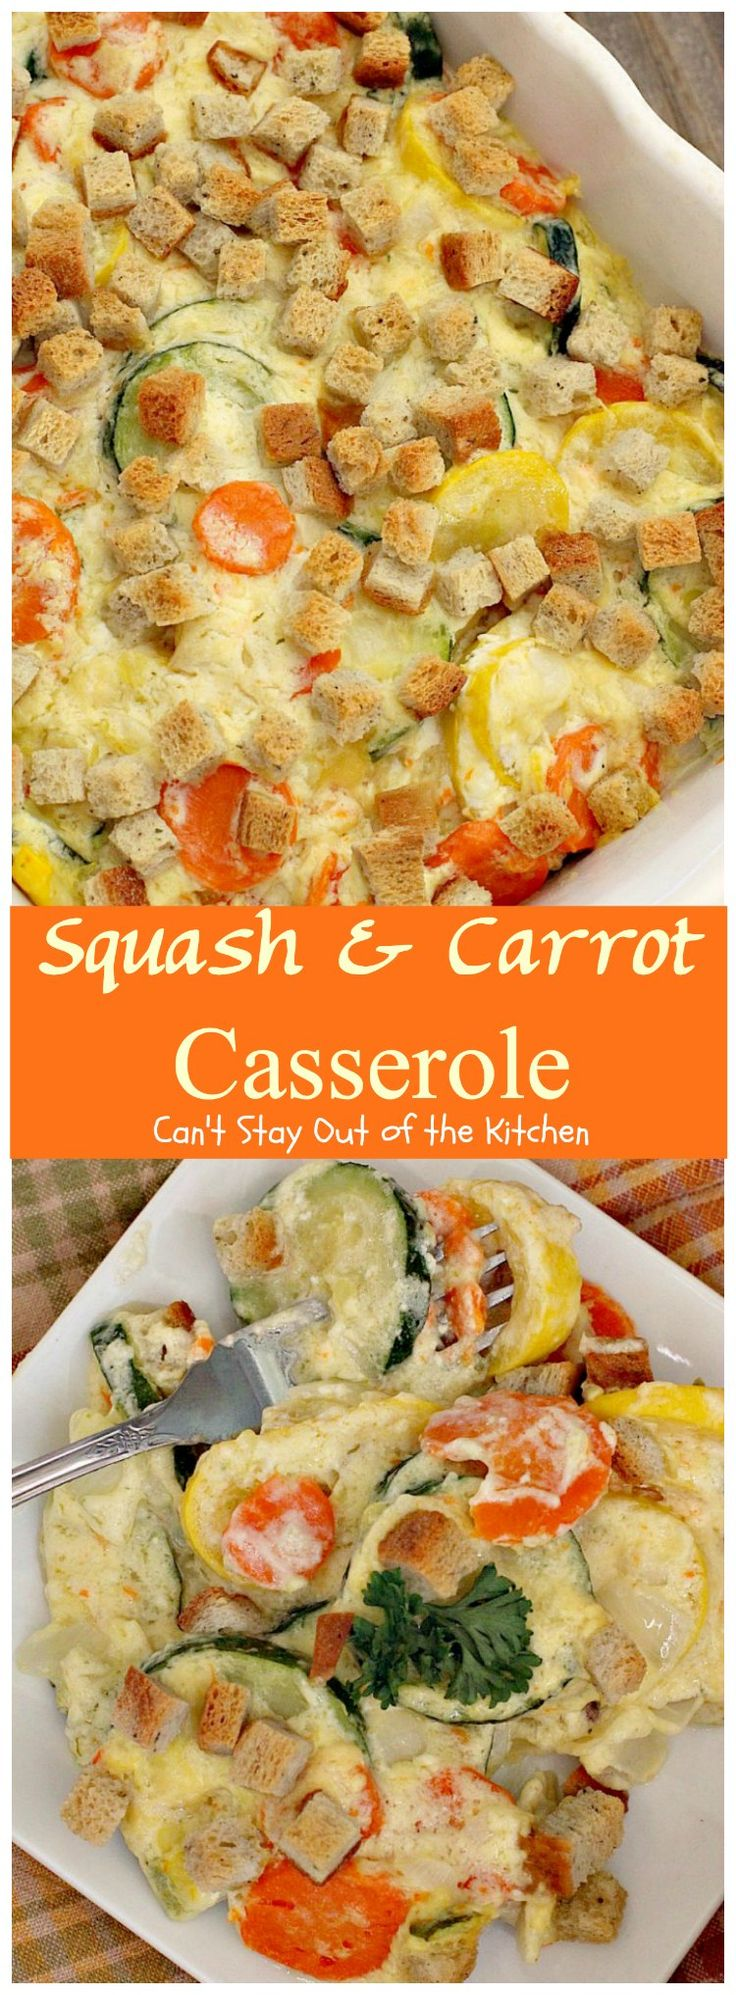 Squash and Carrot Casserole  5/17 ****didn't parboil carrots, next time do